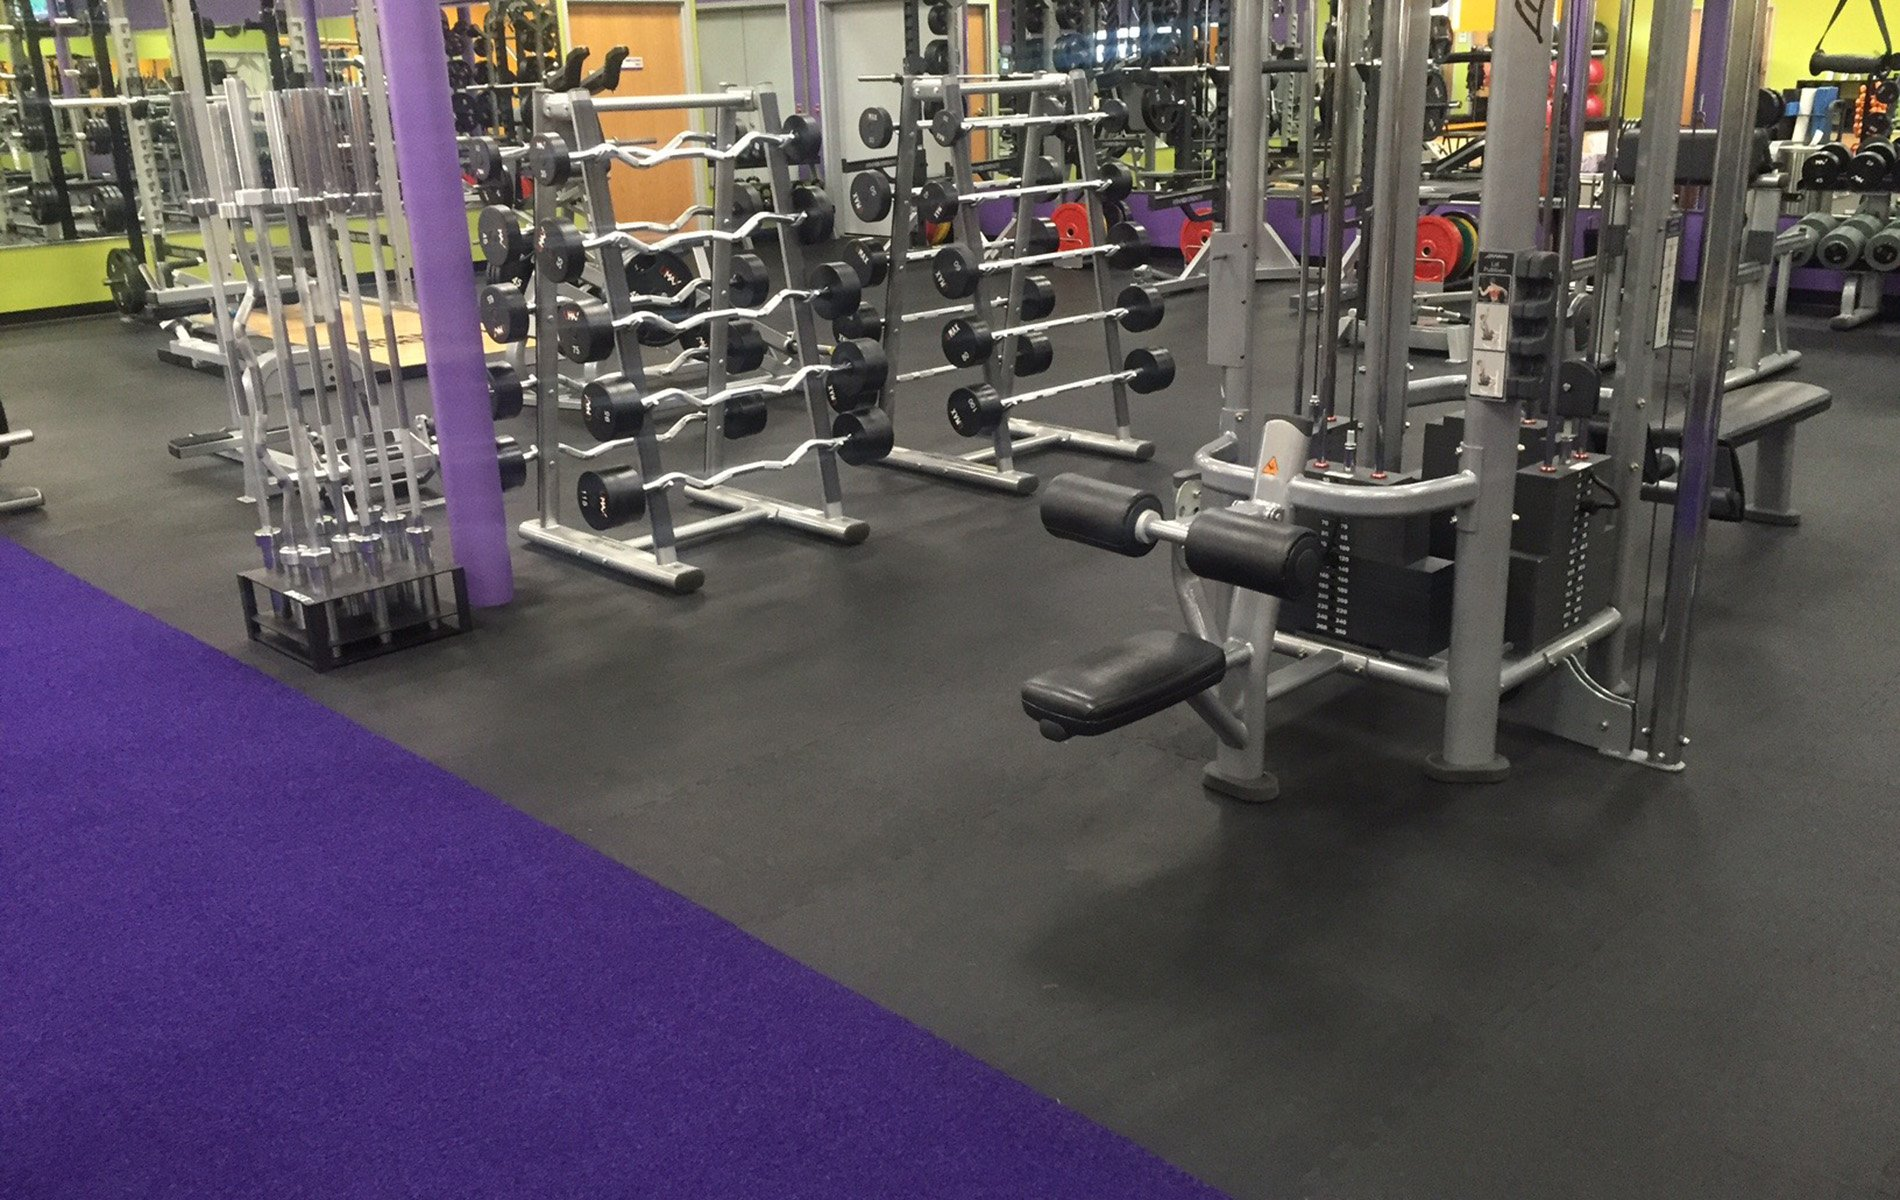 Commercial Chain Gym With Interlocking Tiles